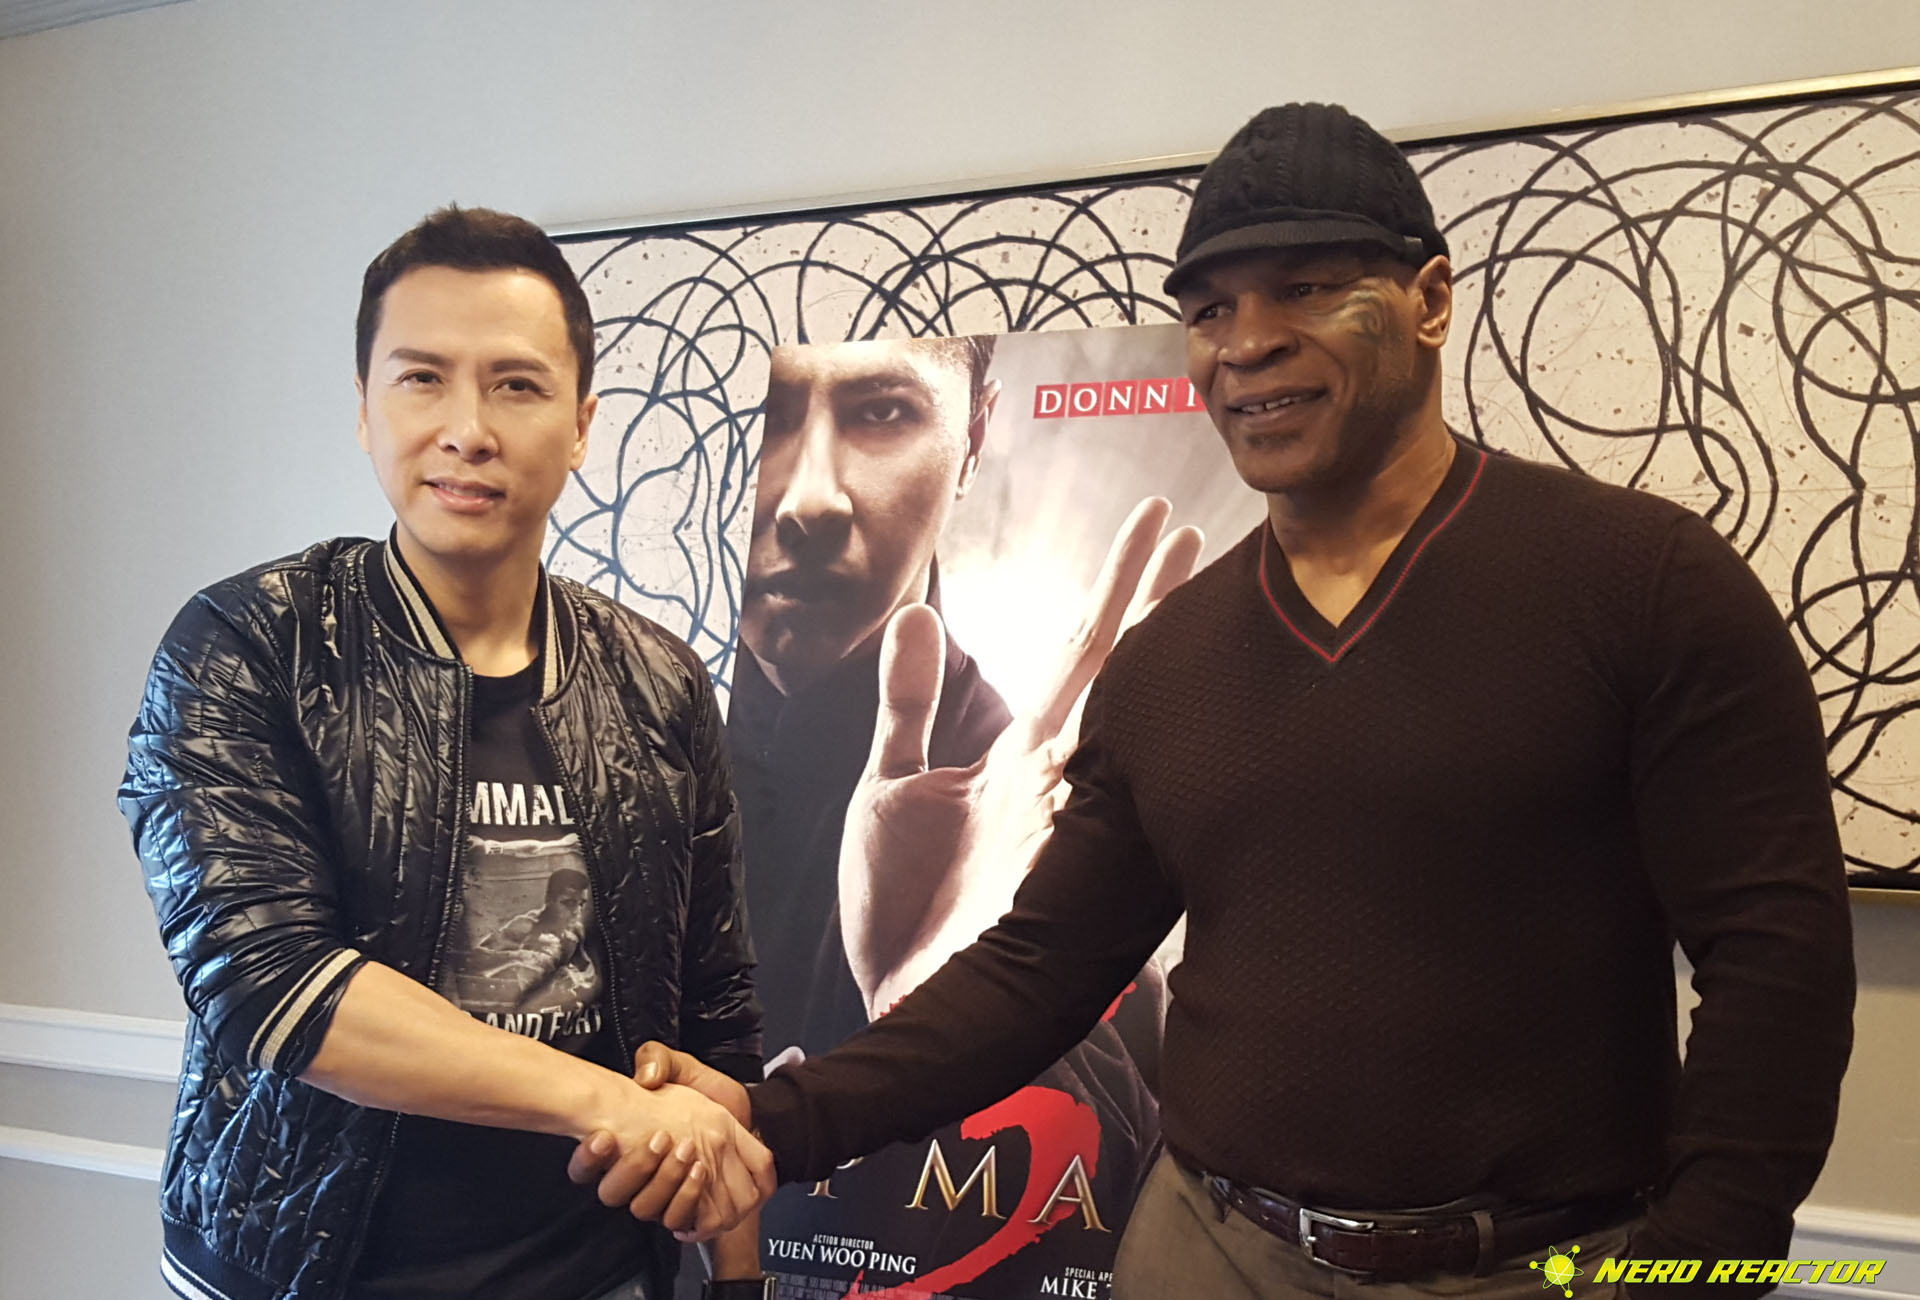 Donnie Yen And Mike Tyson Have Created A Strong Bond